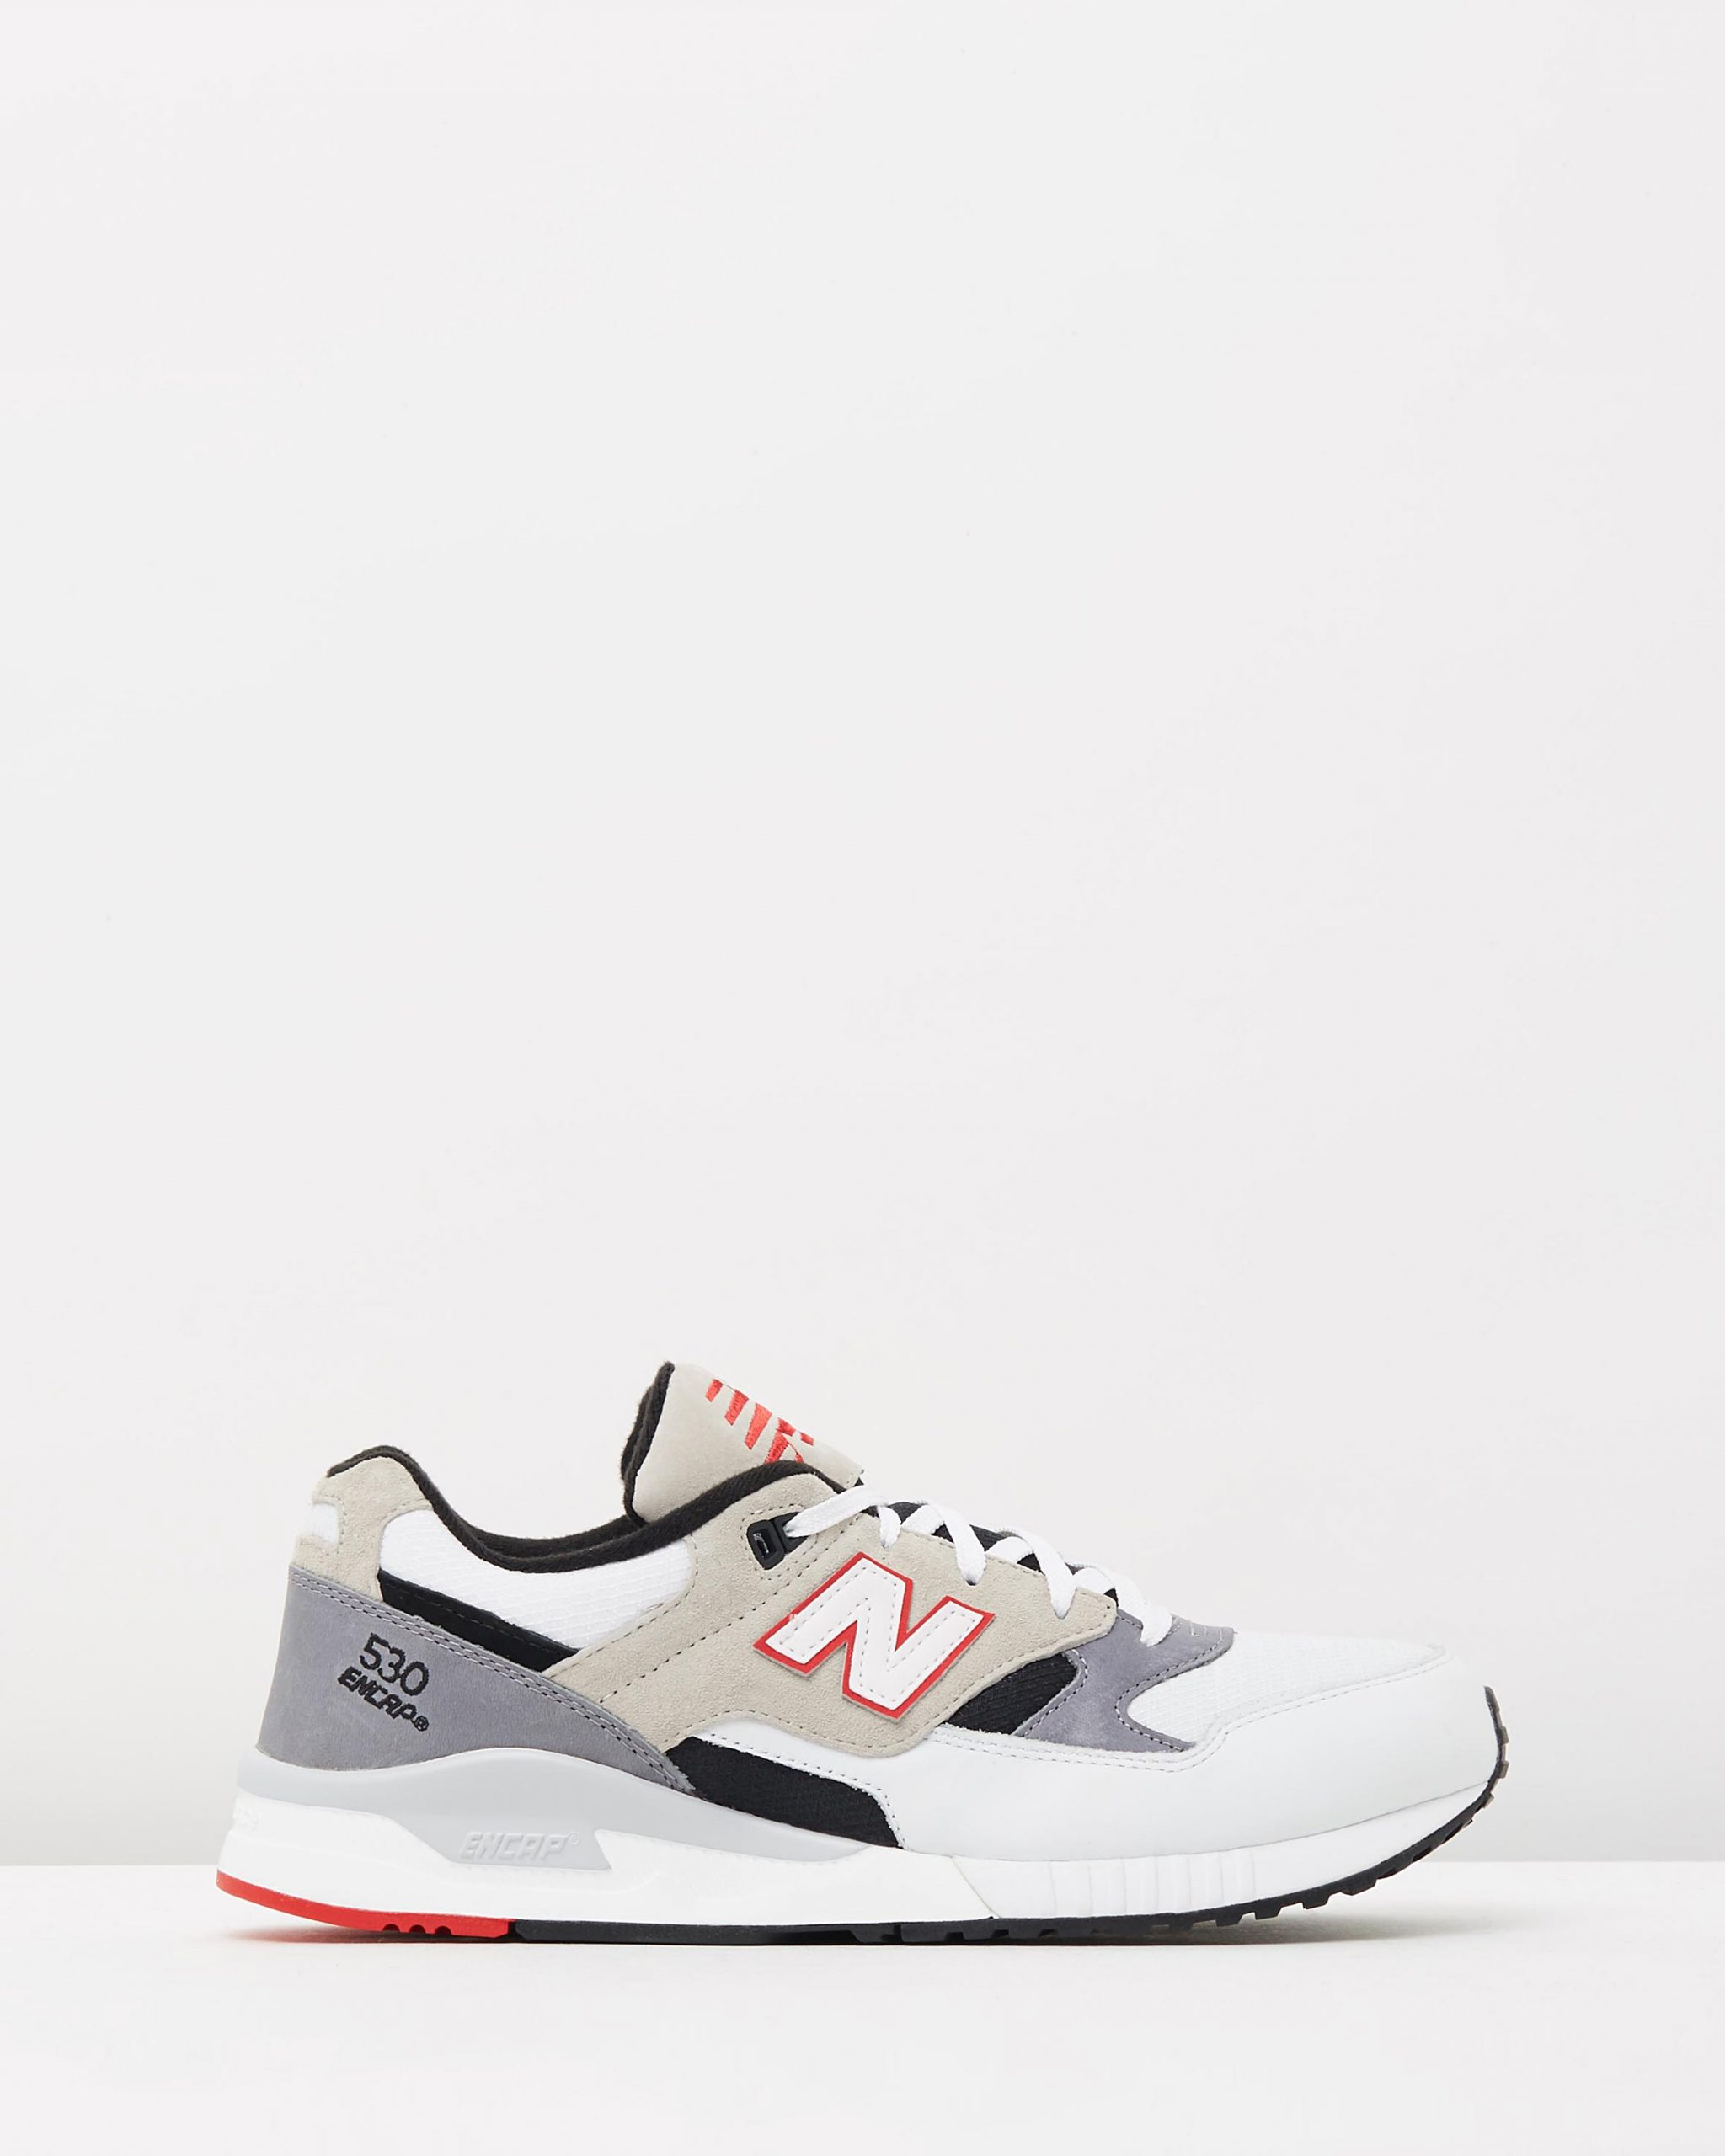 New Balance Men's 530 Lost Mixes Collection Lifestyle Sneakers